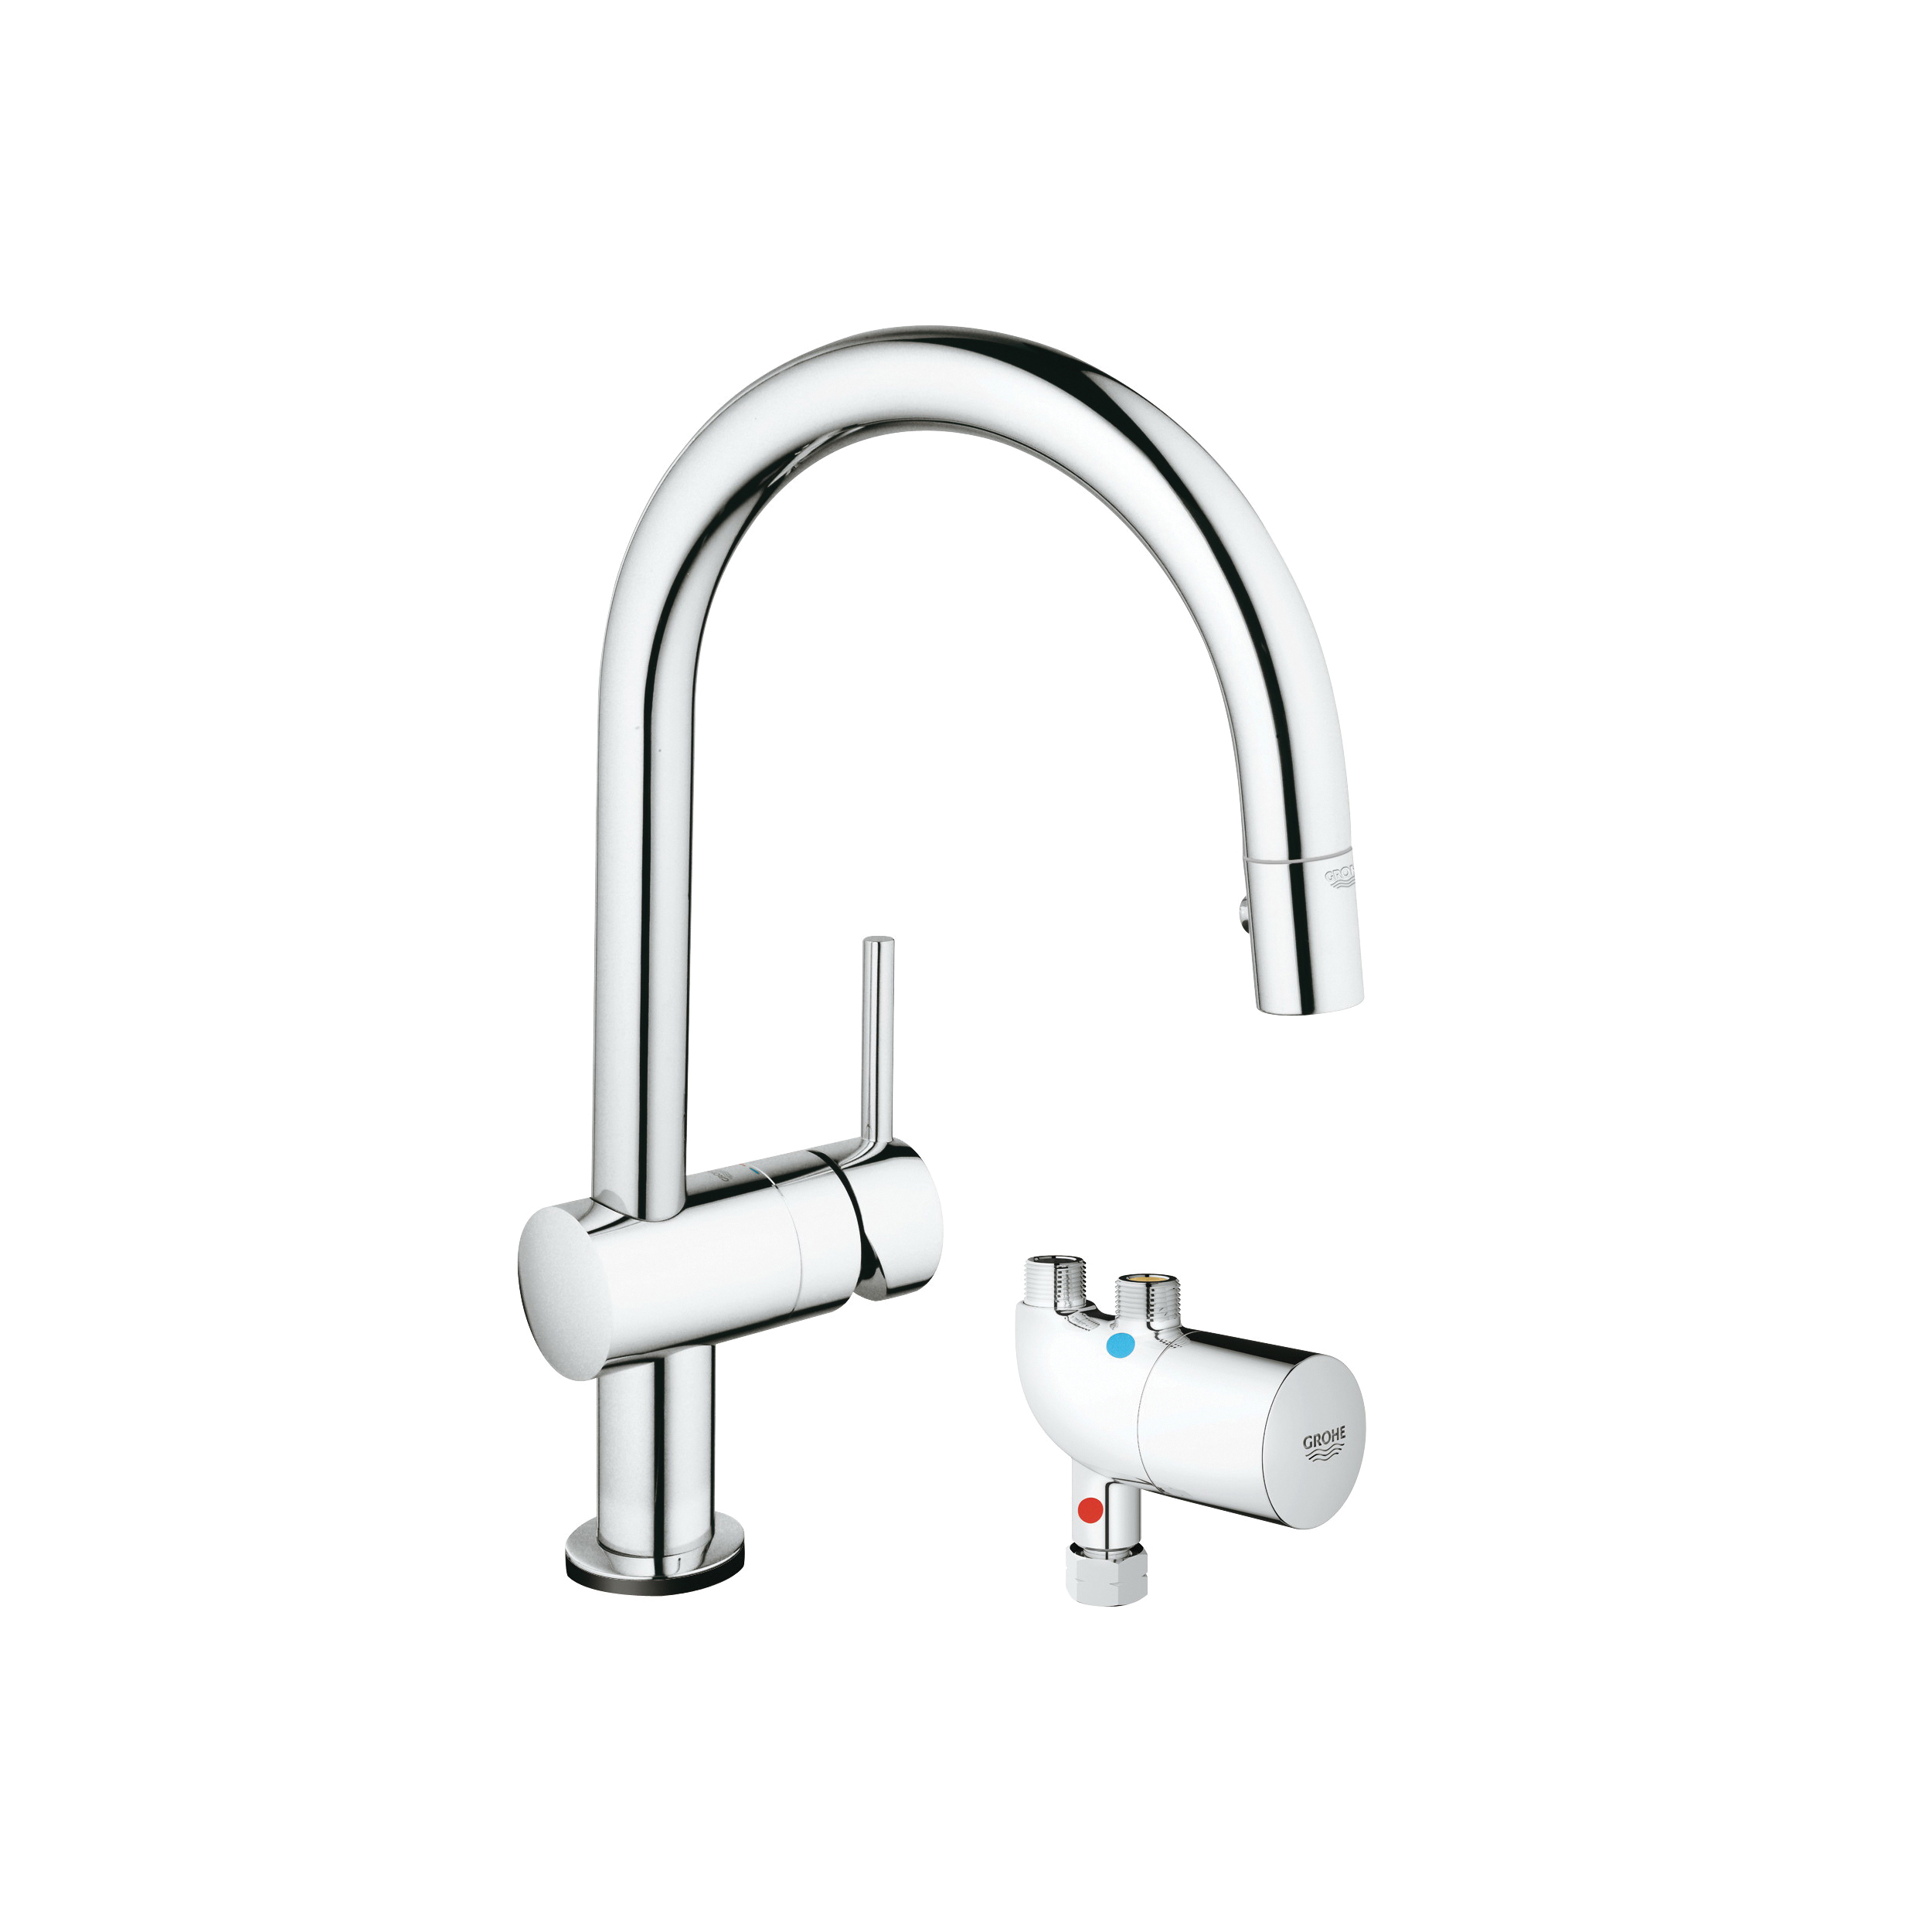 Consolidated Supply Co Grohe 31392000 Minta Pull Down Kitchen